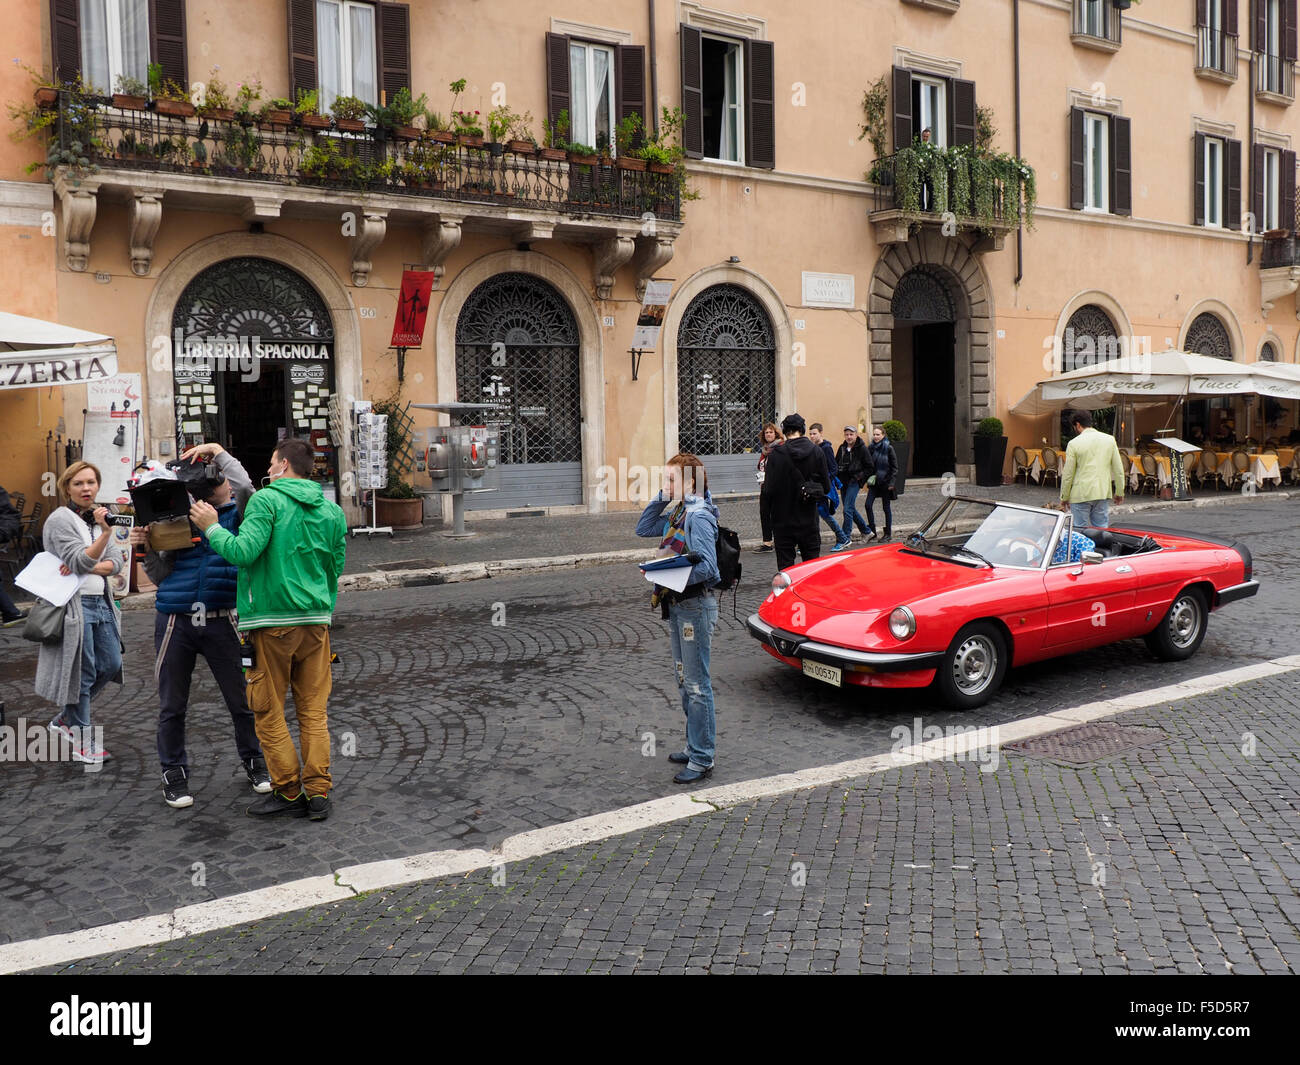 Film crew and male models in a classic Alfa Romeo sportscar on Piazza Navona in Rome, Italy - Stock Image